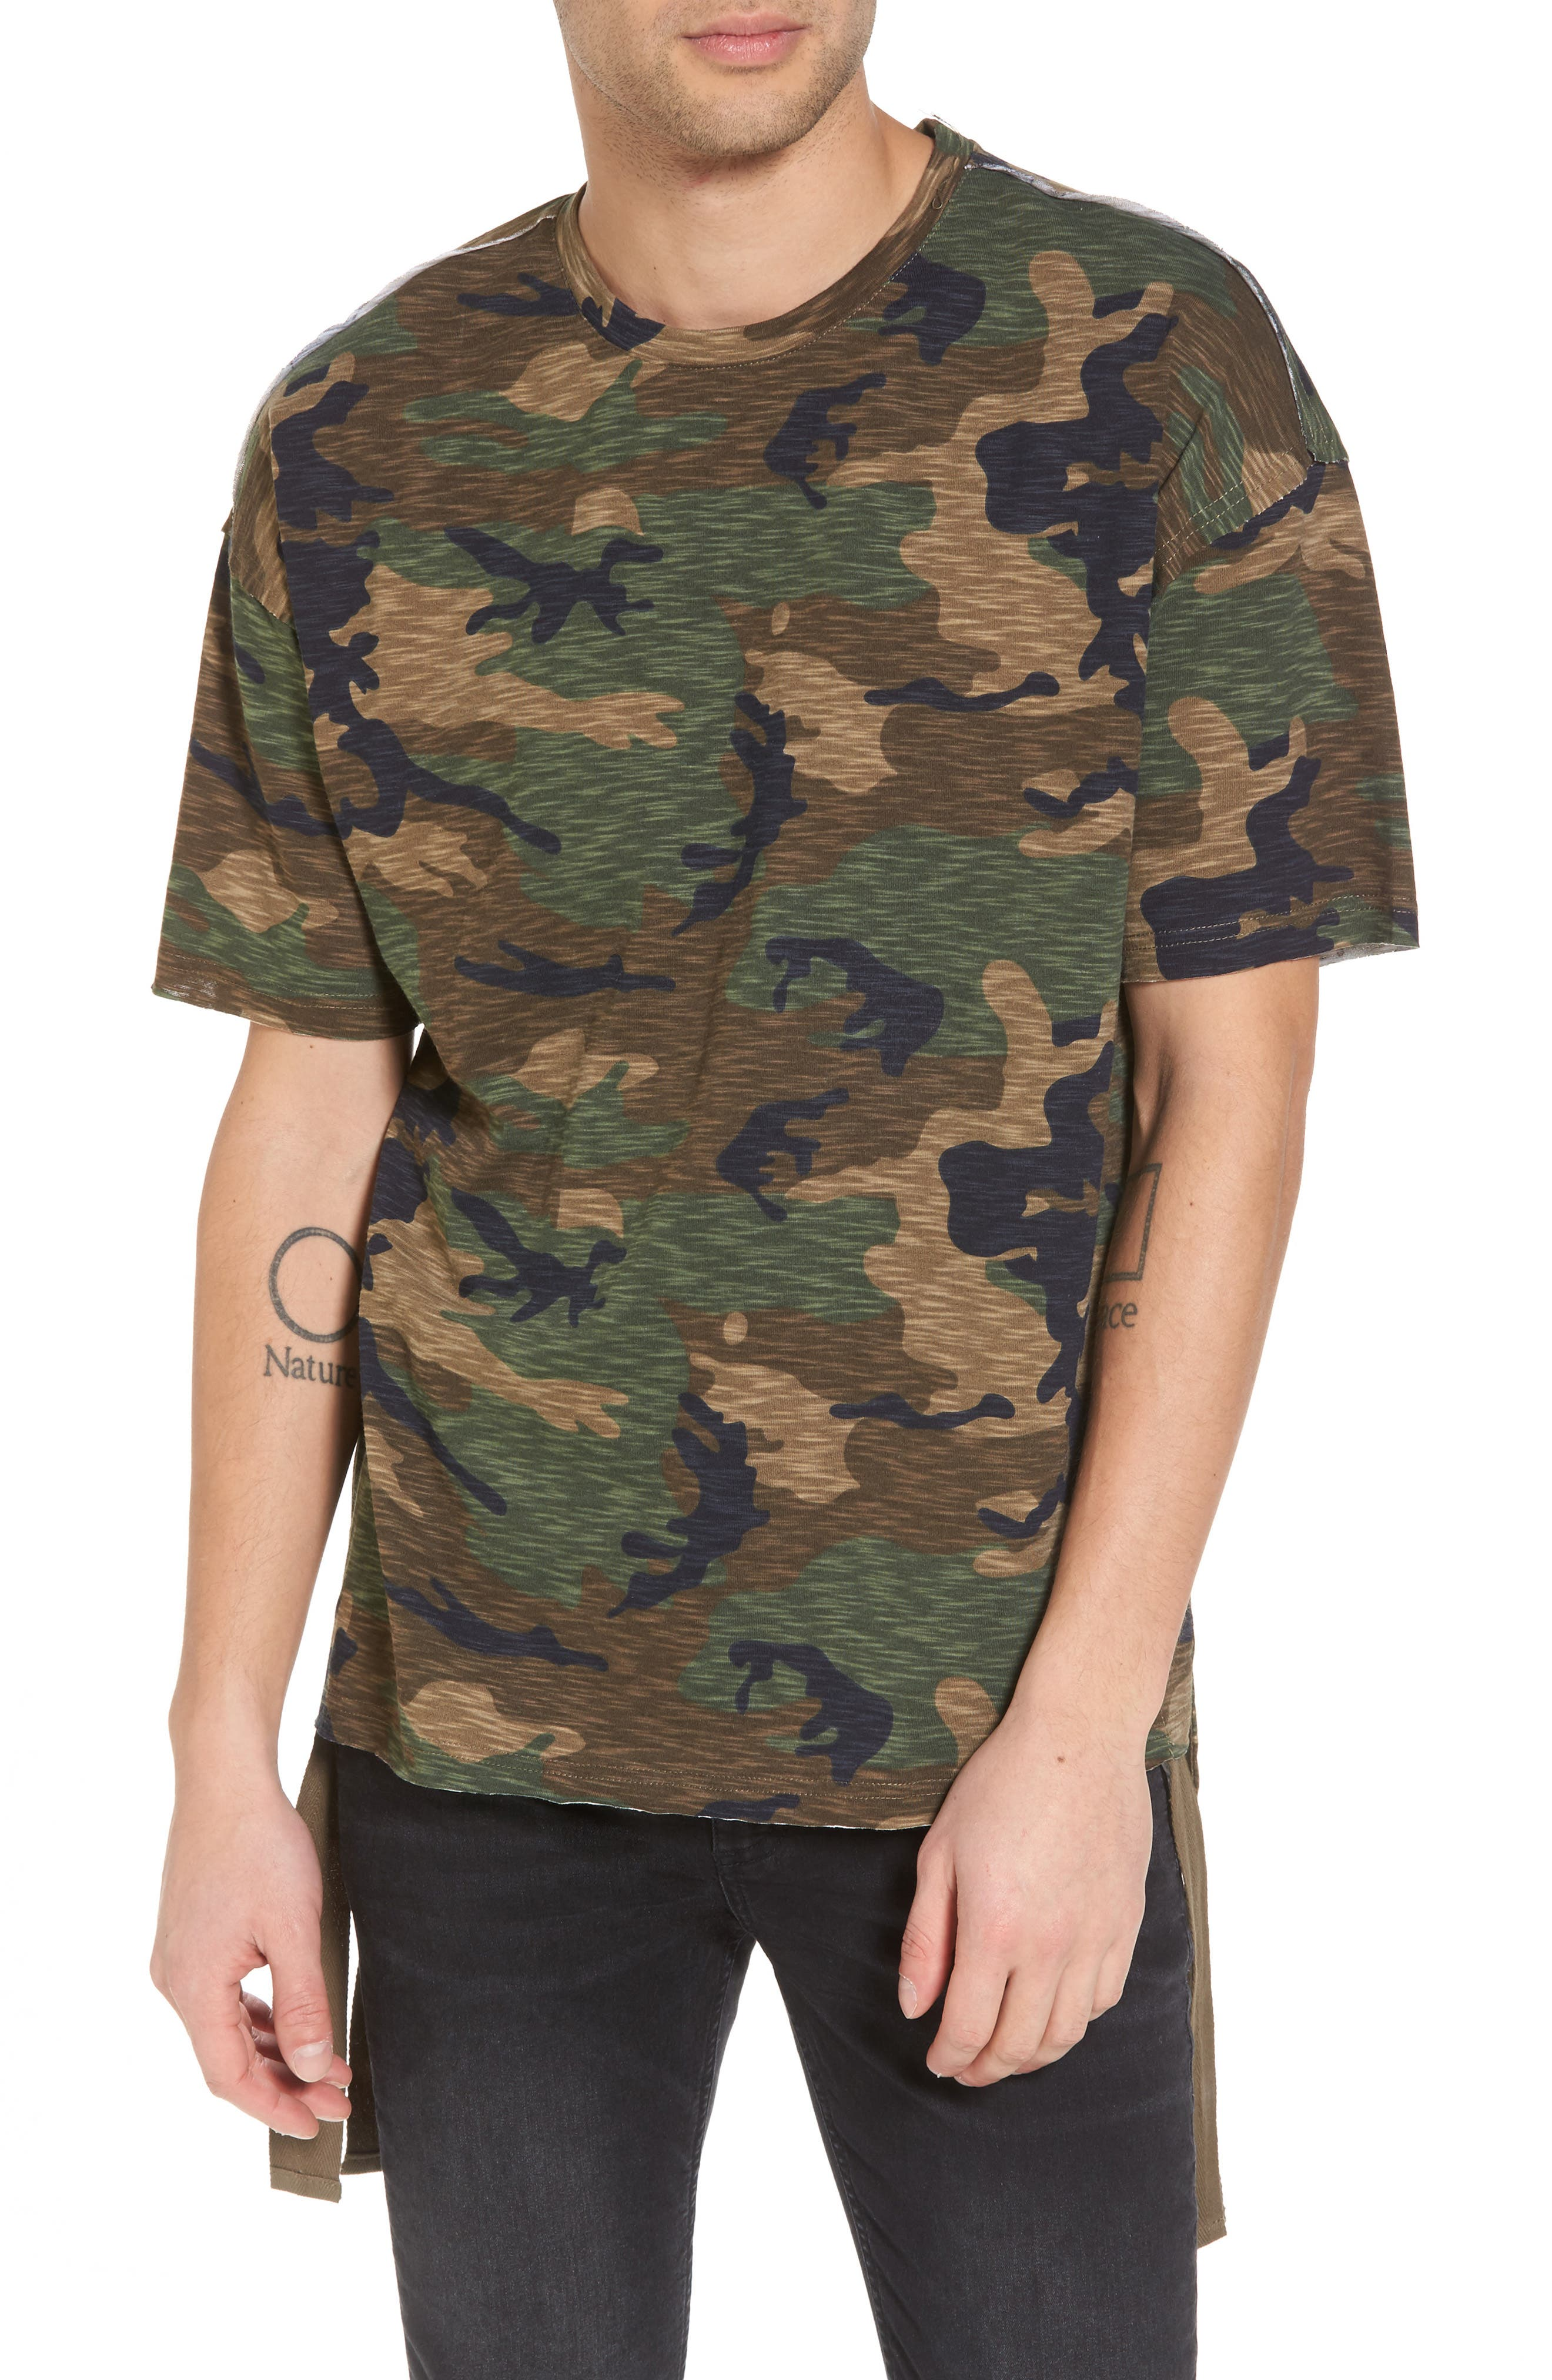 Main Image - The Rail Camo Strapped T-Shirt